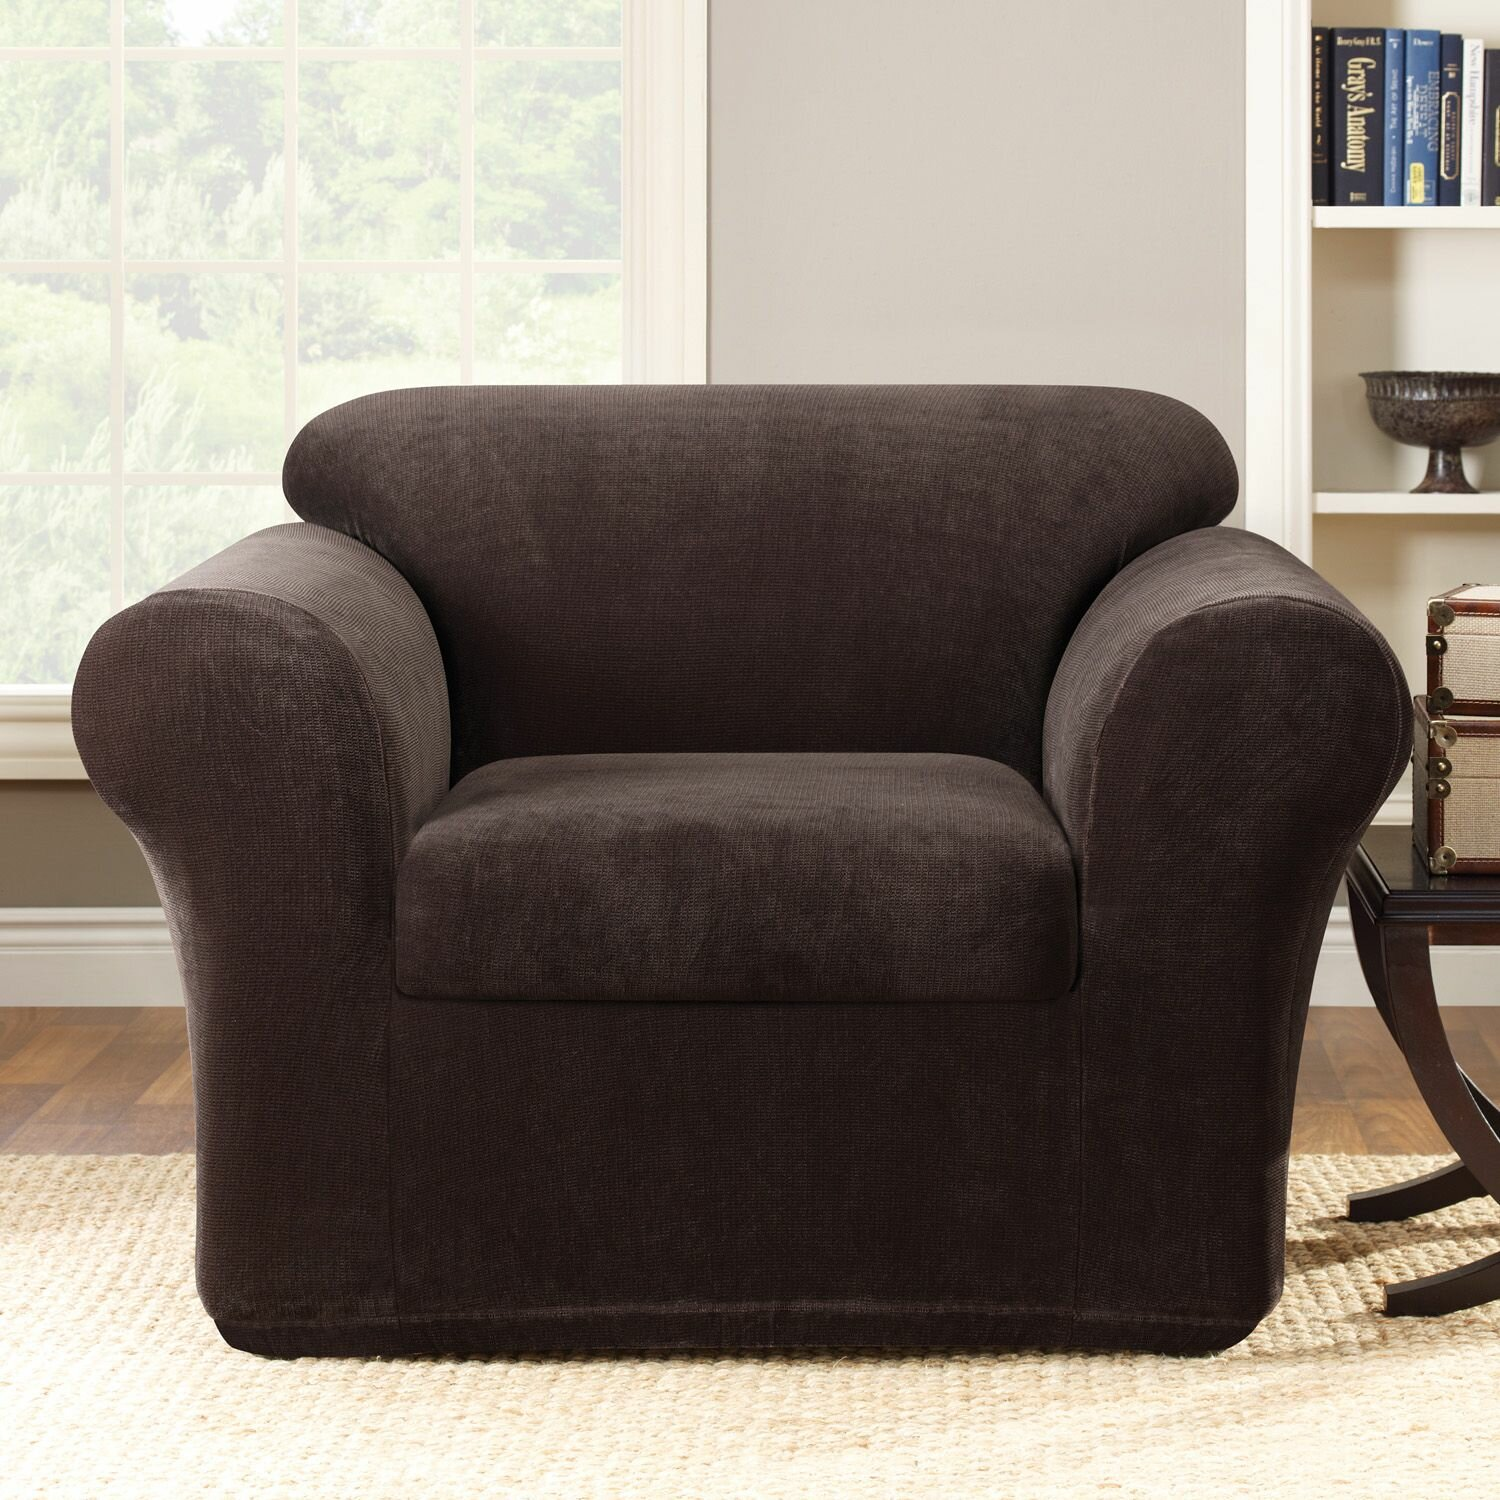 Sure Fit Stretch Metro 2-Piece Armchair Slipcover & Reviews | Wayfair